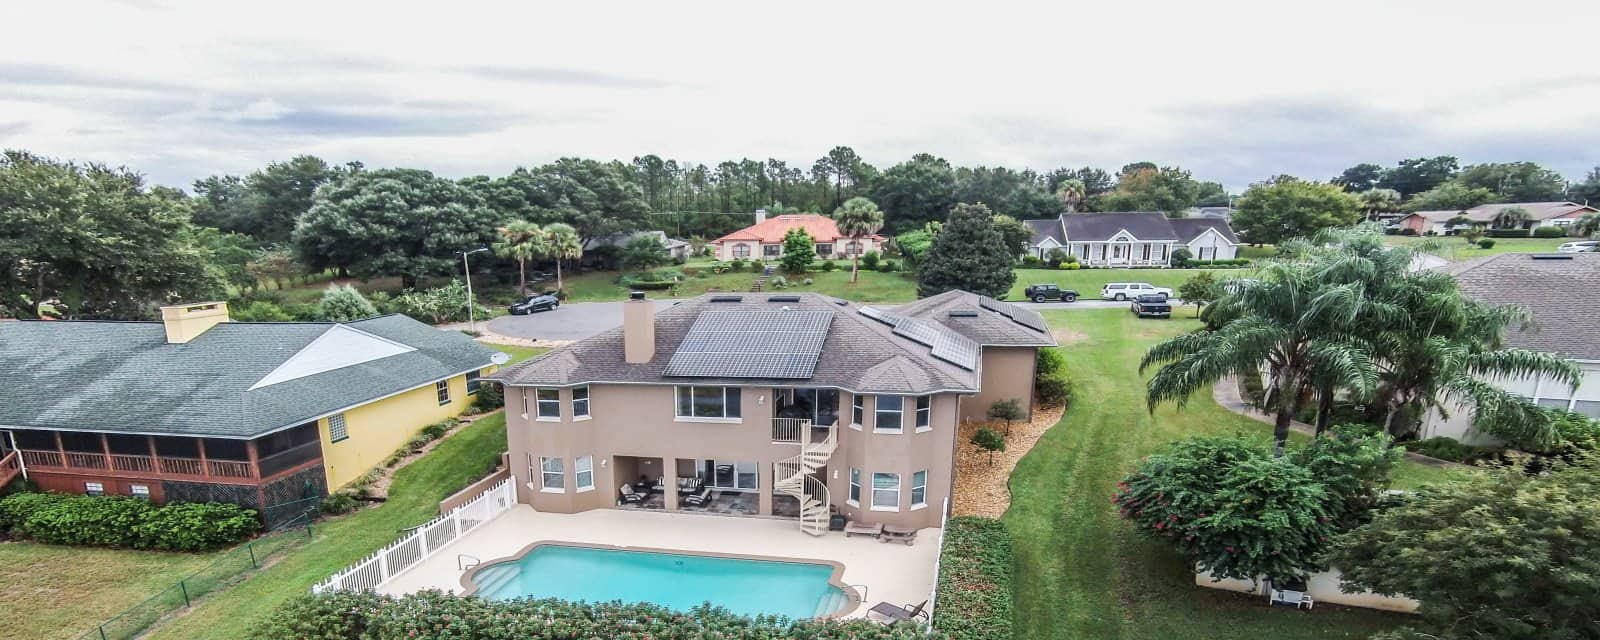 Mansion with pool in Leesburg